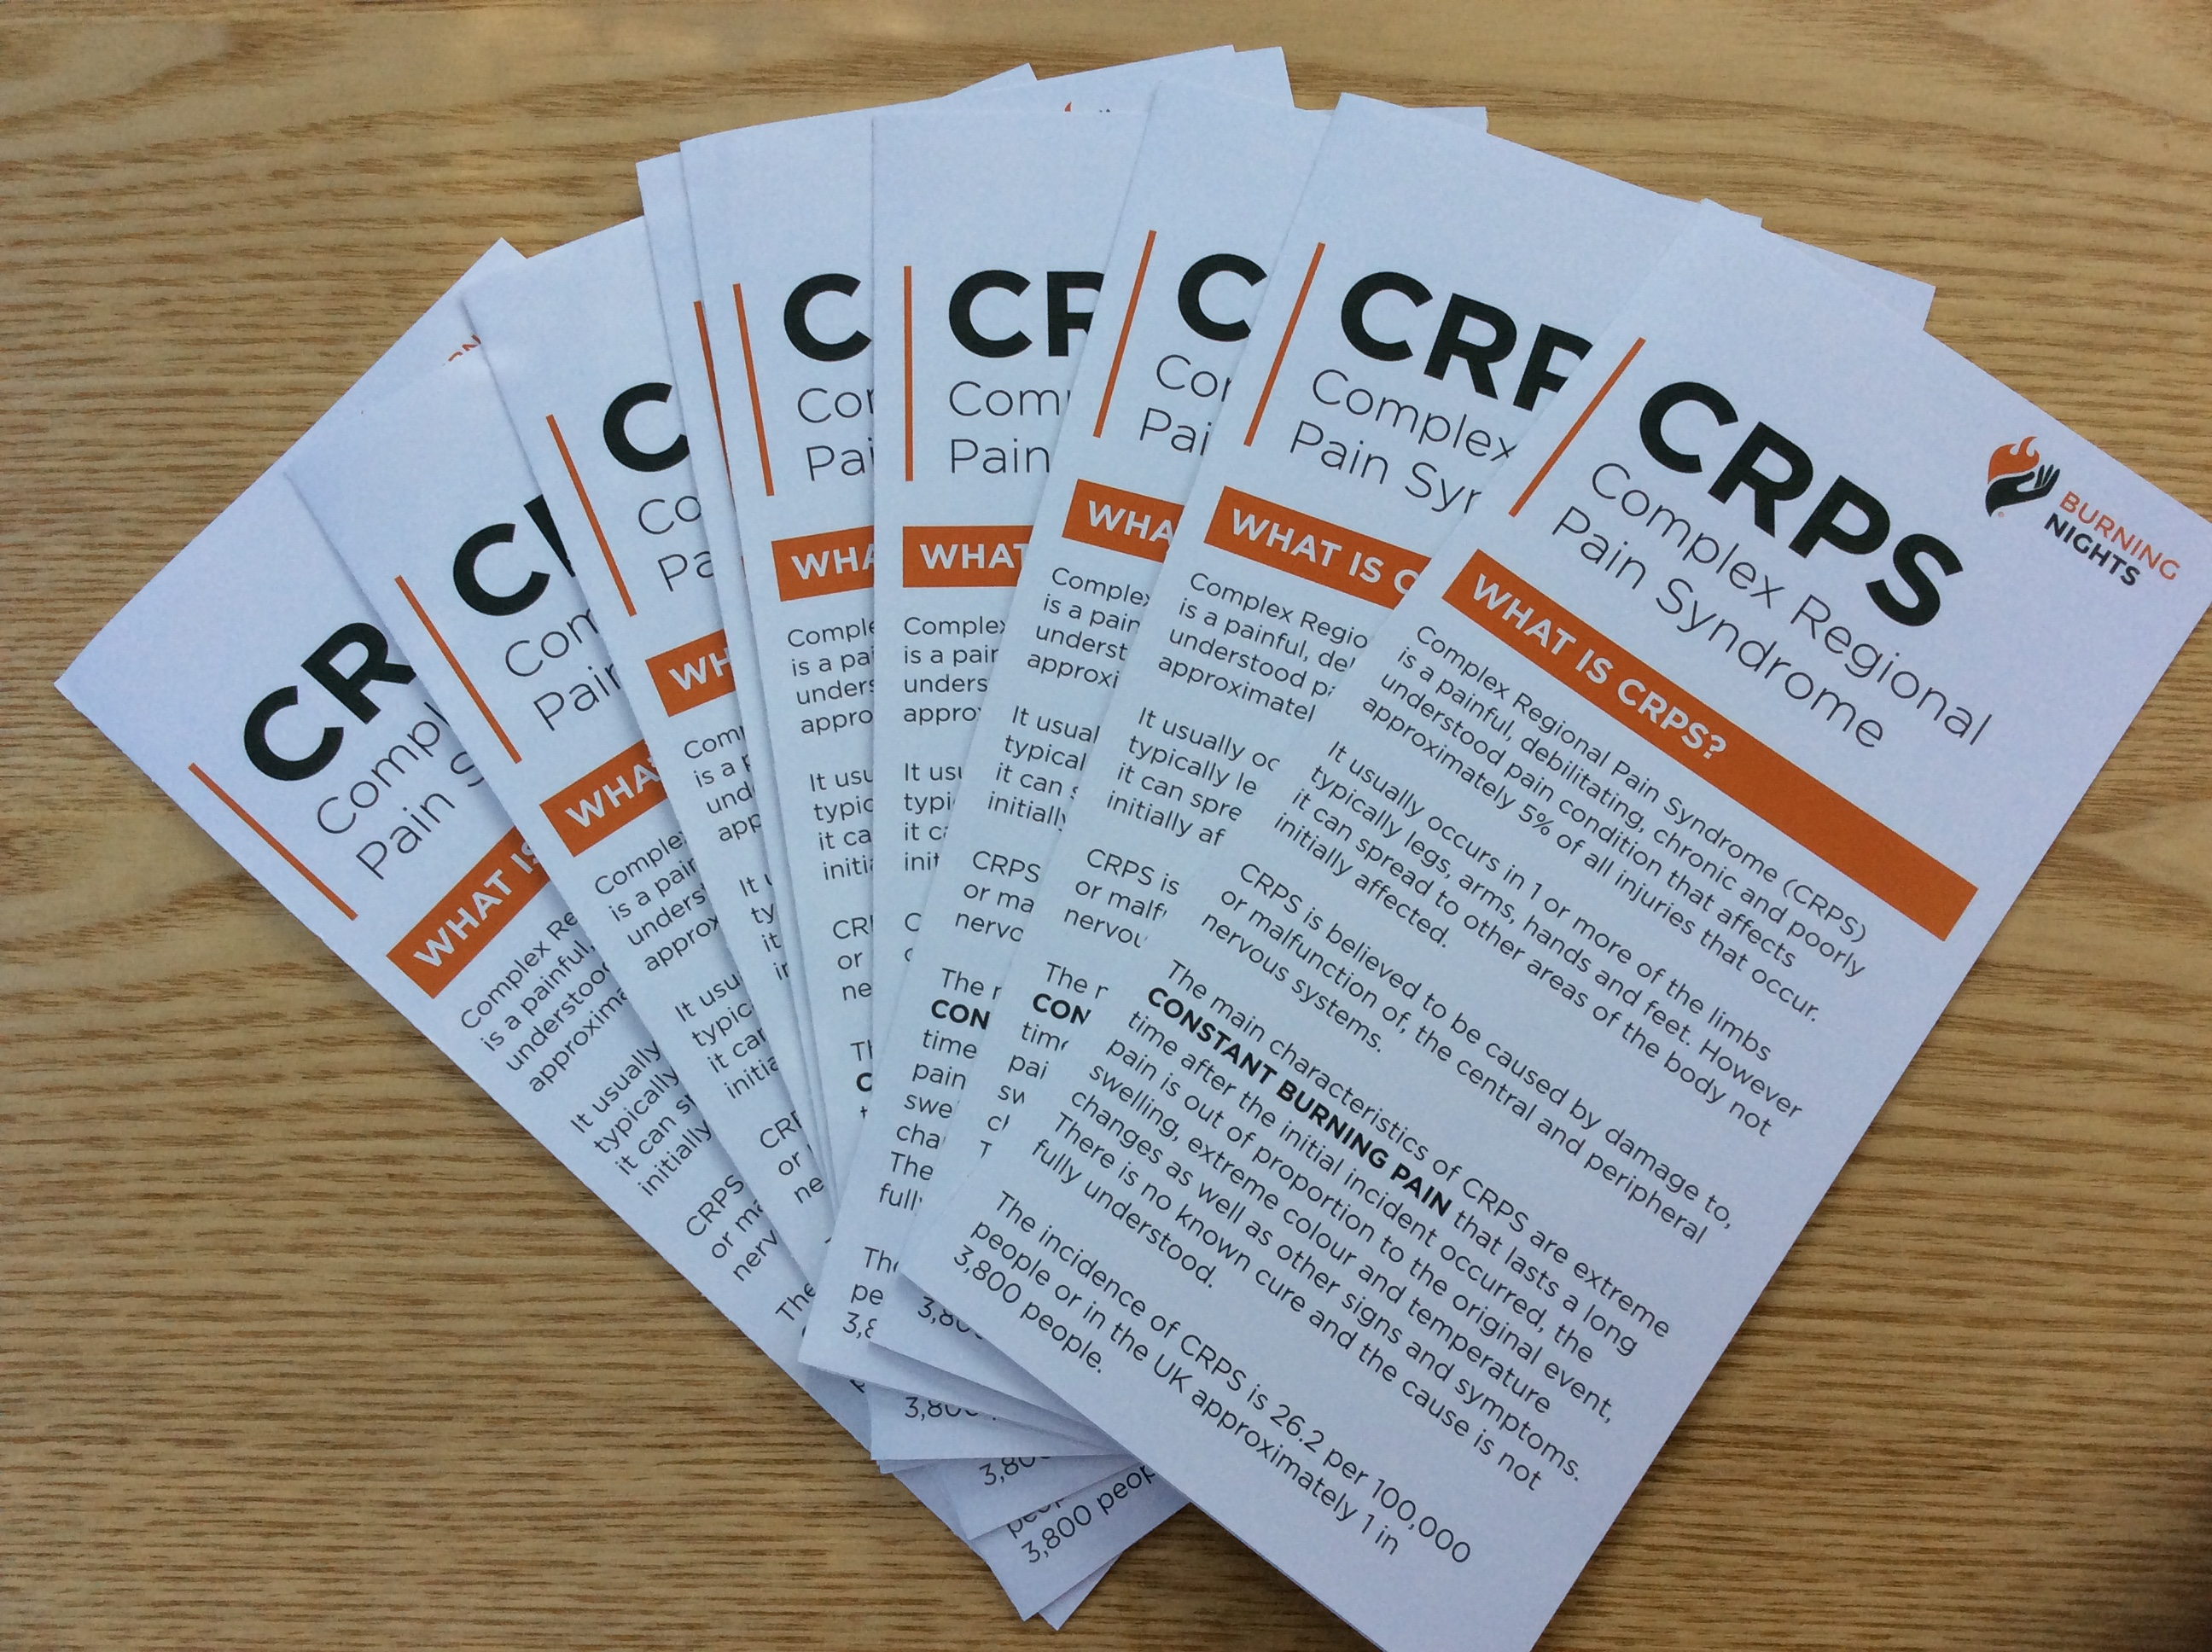 CRPS/RSD Awareness and Information Leaflet via Burning Nights CRPS Support